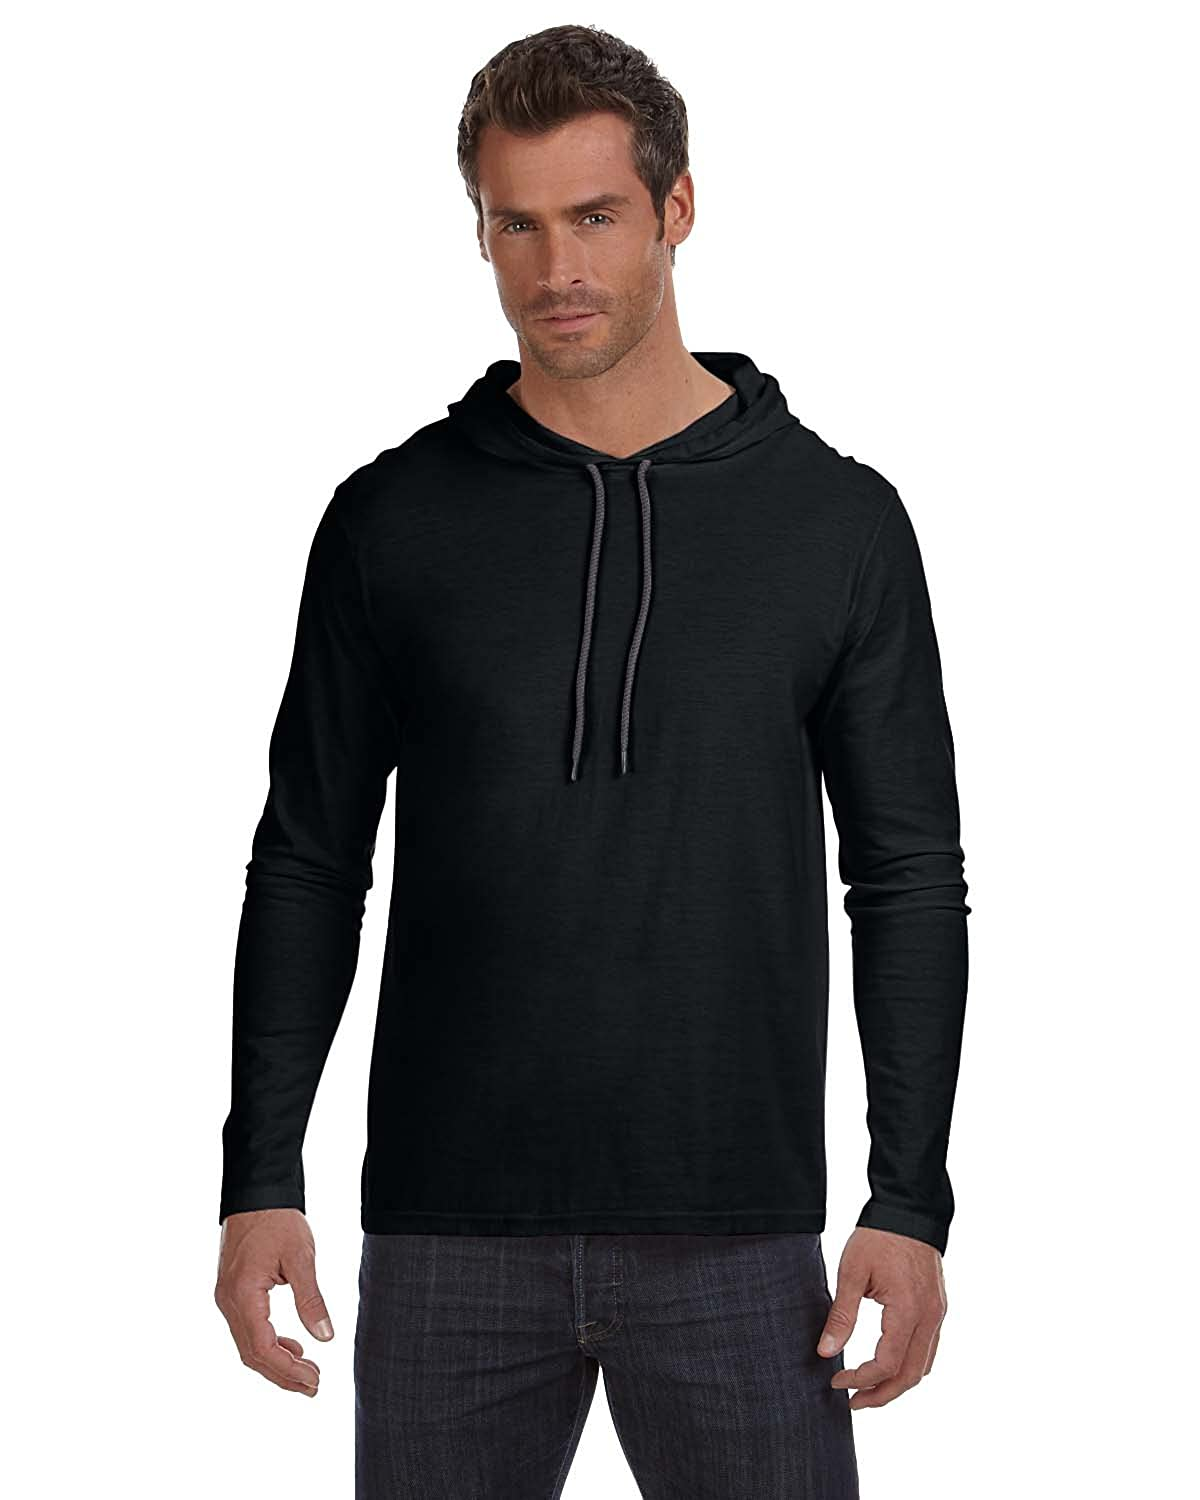 826339687 Anvil Lightweight Long-Sleeve Hooded T-Shirt at Amazon Men's Clothing store: